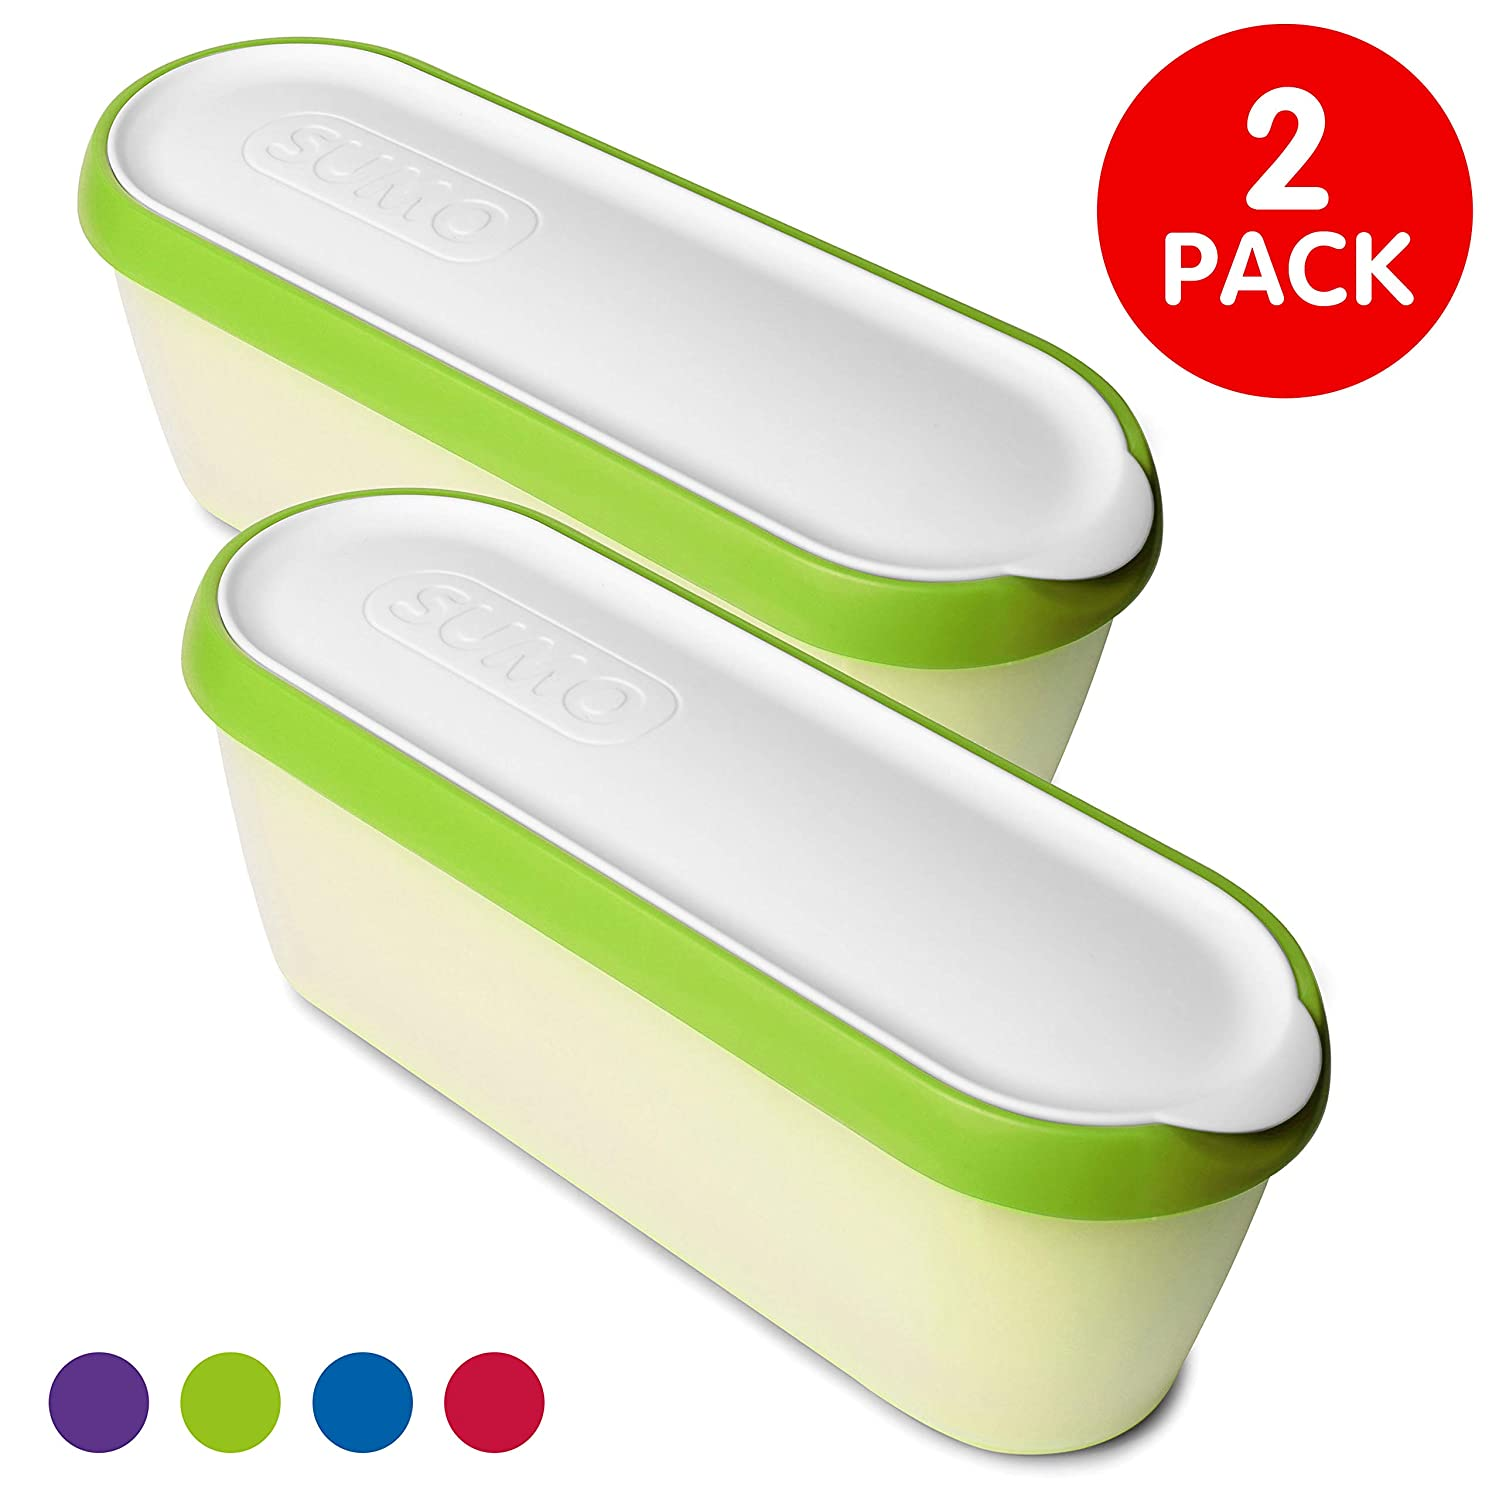 SUMO Ice Cream Containers: Insulated Ice Cream Tub for Homemade Ice-Cream, Gelato or Sorbet - Dishwasher Safe - 1.5 Quart Capacity [Green, 2-Pack]